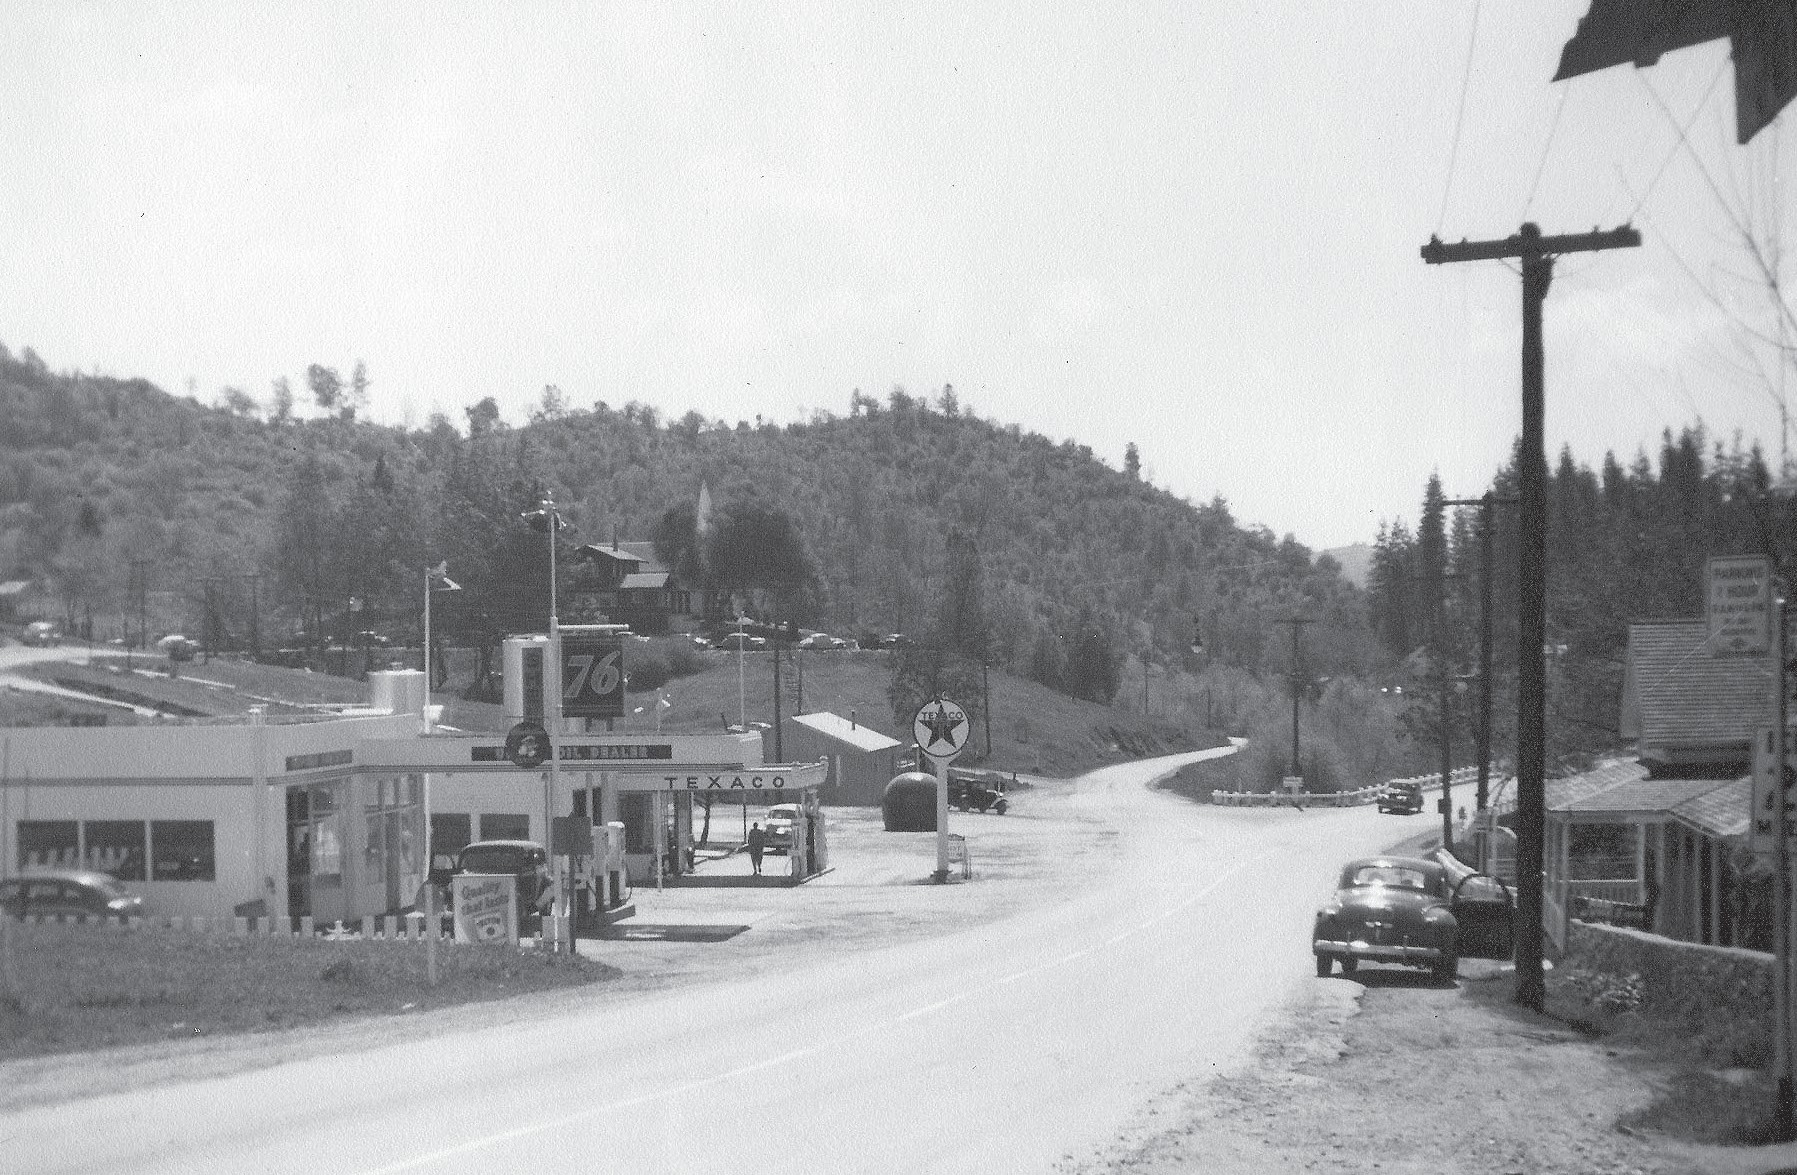 """""""Mariposa County Flashback"""" is a collaboration between the newspaper and the Mariposa County Museum and History Center. This photo is looking south from Mariposa circa 1940. There is a 76 service station, a Texaco and """"Big Orange"""" which was a hamburger shop. In addition to featuring photos from the museum, we are also looking for historic photos from our readers. These can include photos with people who are not identified and, if printed, someone may be able to help our readers obtain those identifications. If you have a photo for Mariposa County Flashback, email it to greg@mariposagazette.com. You can also bring it by our office at 5108 Highway 140, Suite B in Mariposa. We can scan it immediately so you can have it back. Submitted photo"""